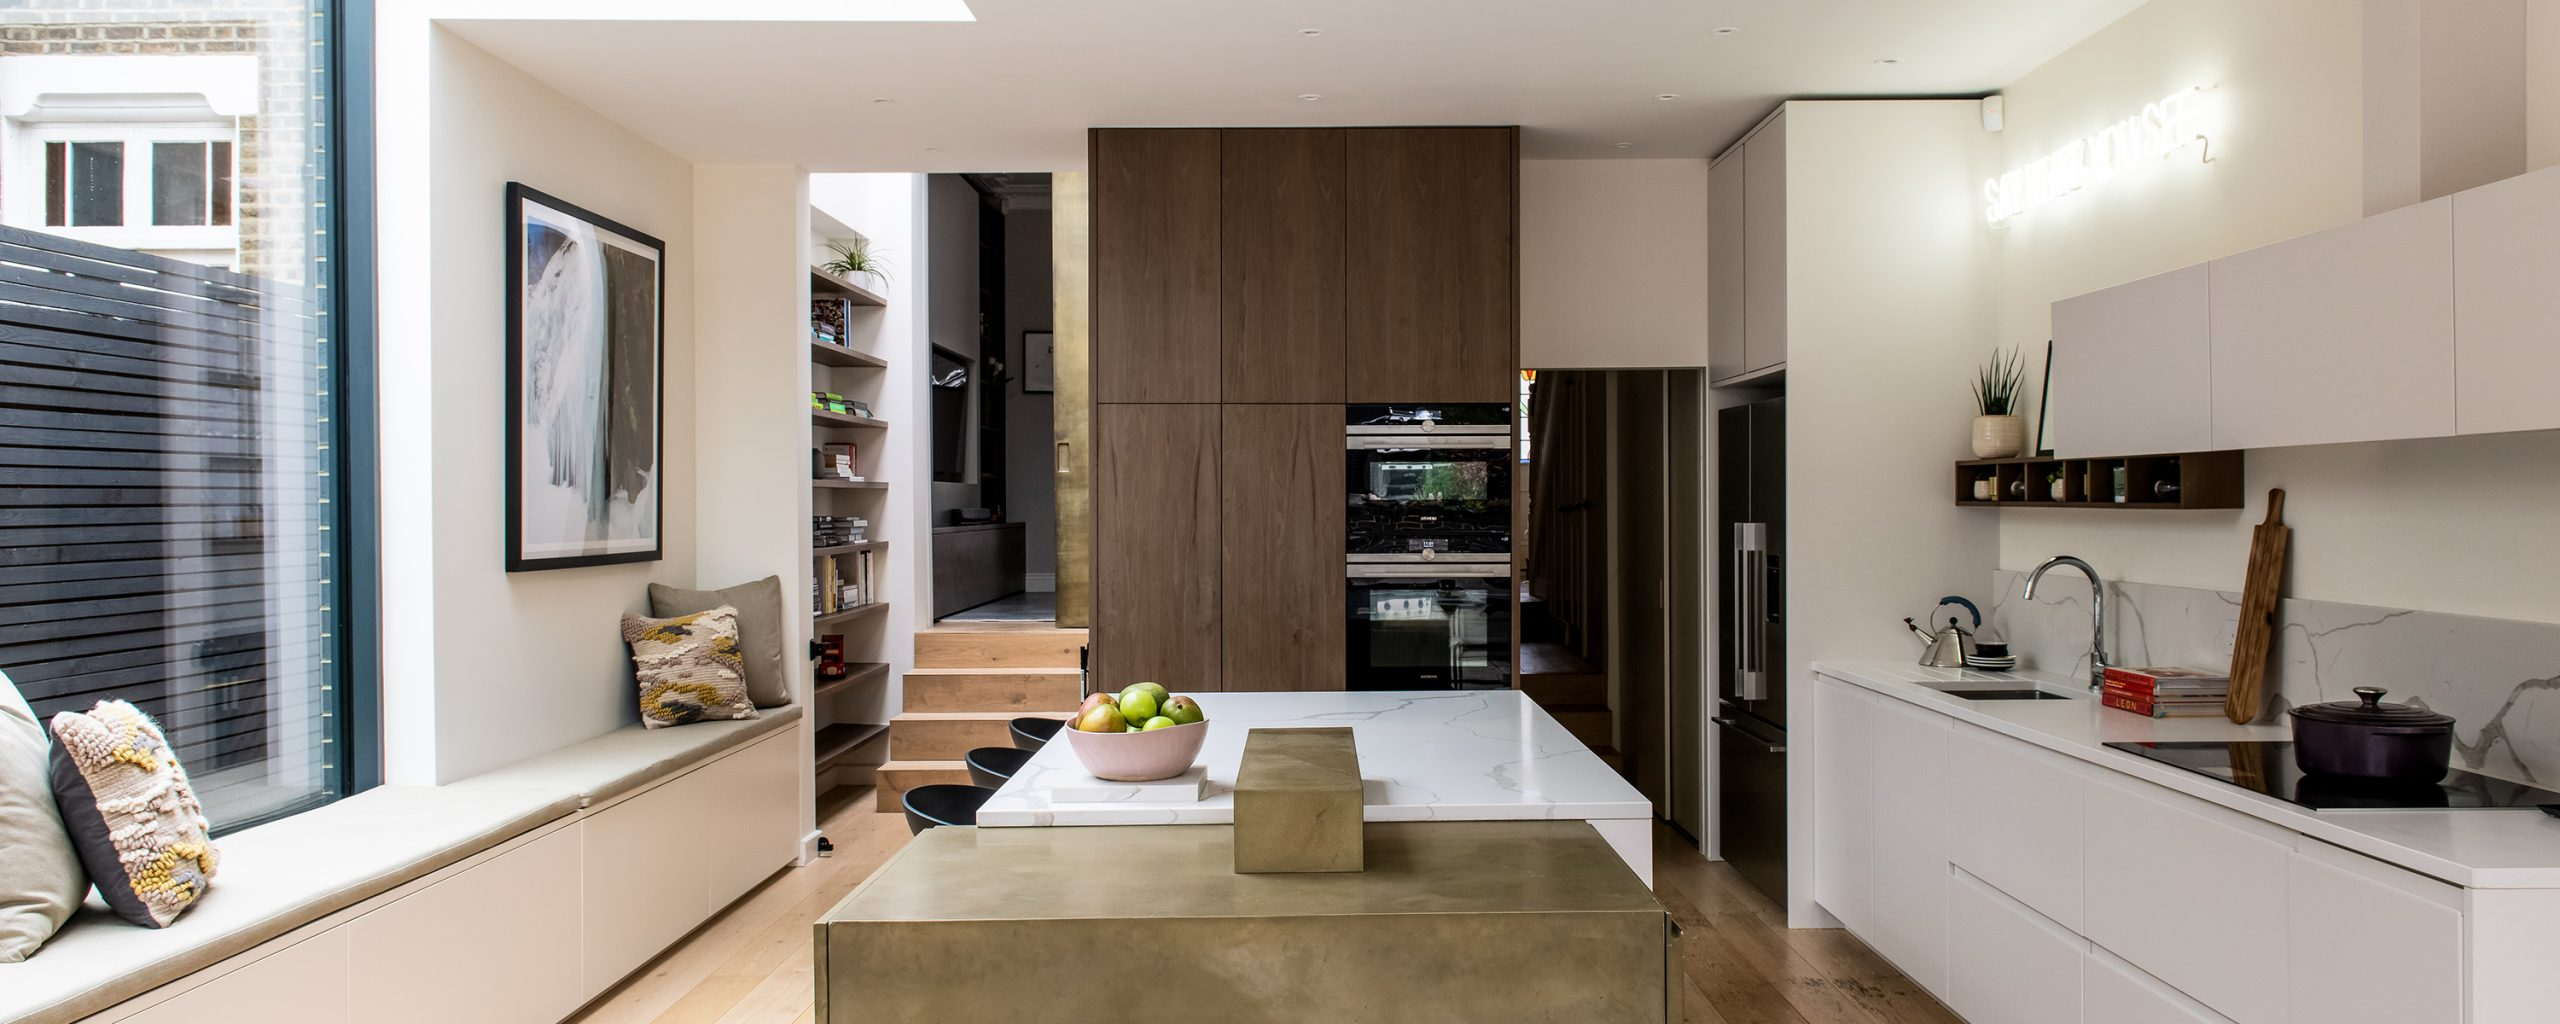 residential interior design for spacious kitchen with dining area, bespoke white cabinets, Brockley